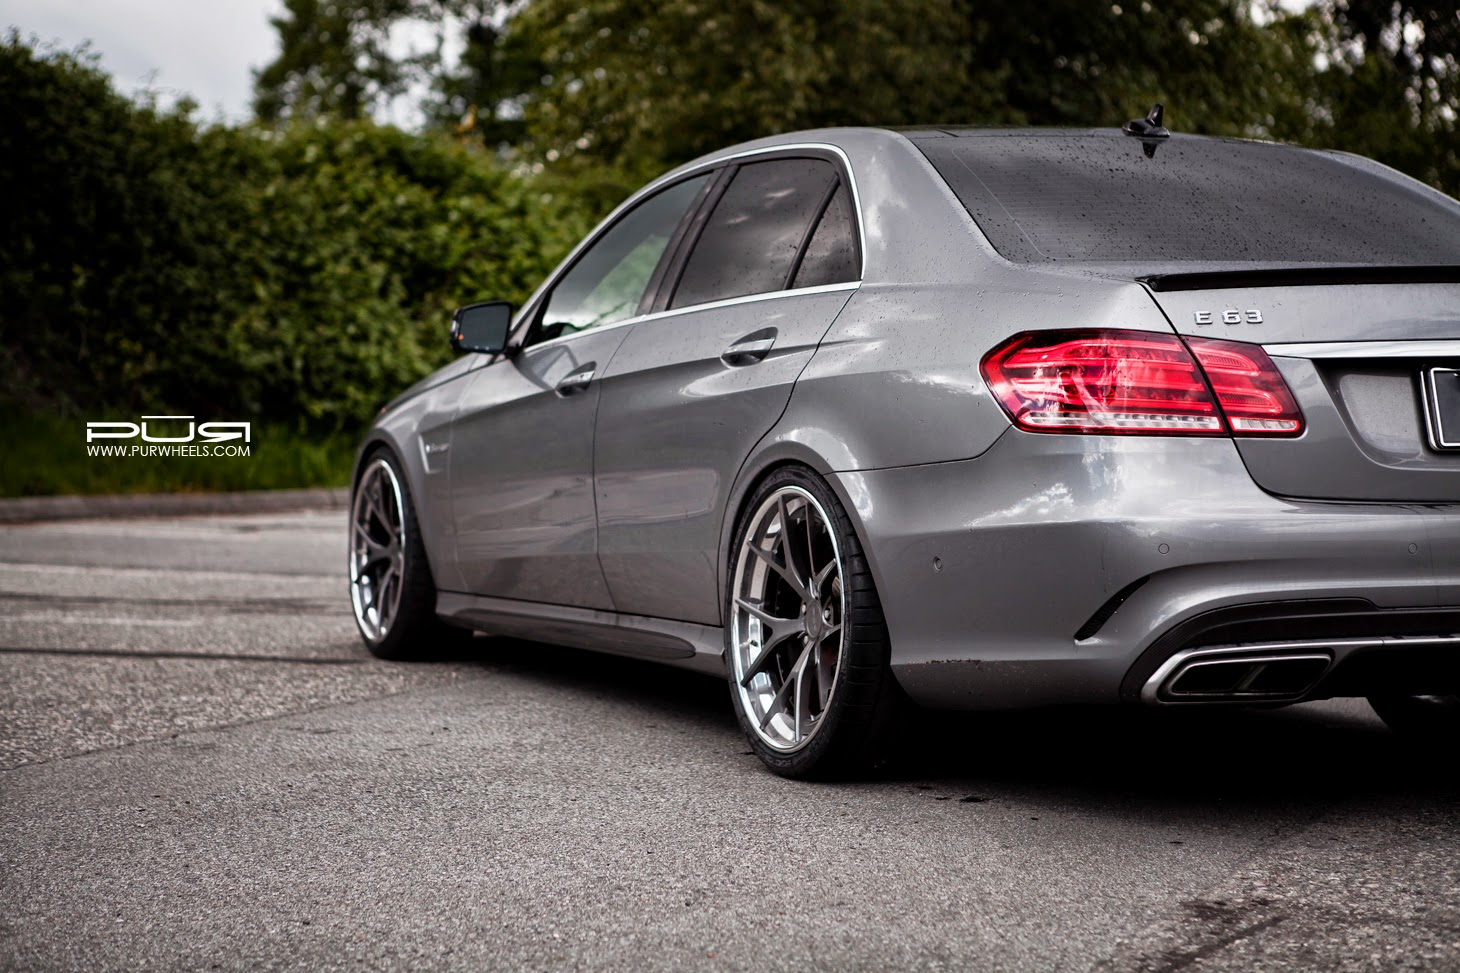 Mercedes benz w212 e63 amg facelift on pur wheels benztuning for Mercedes benz wheel